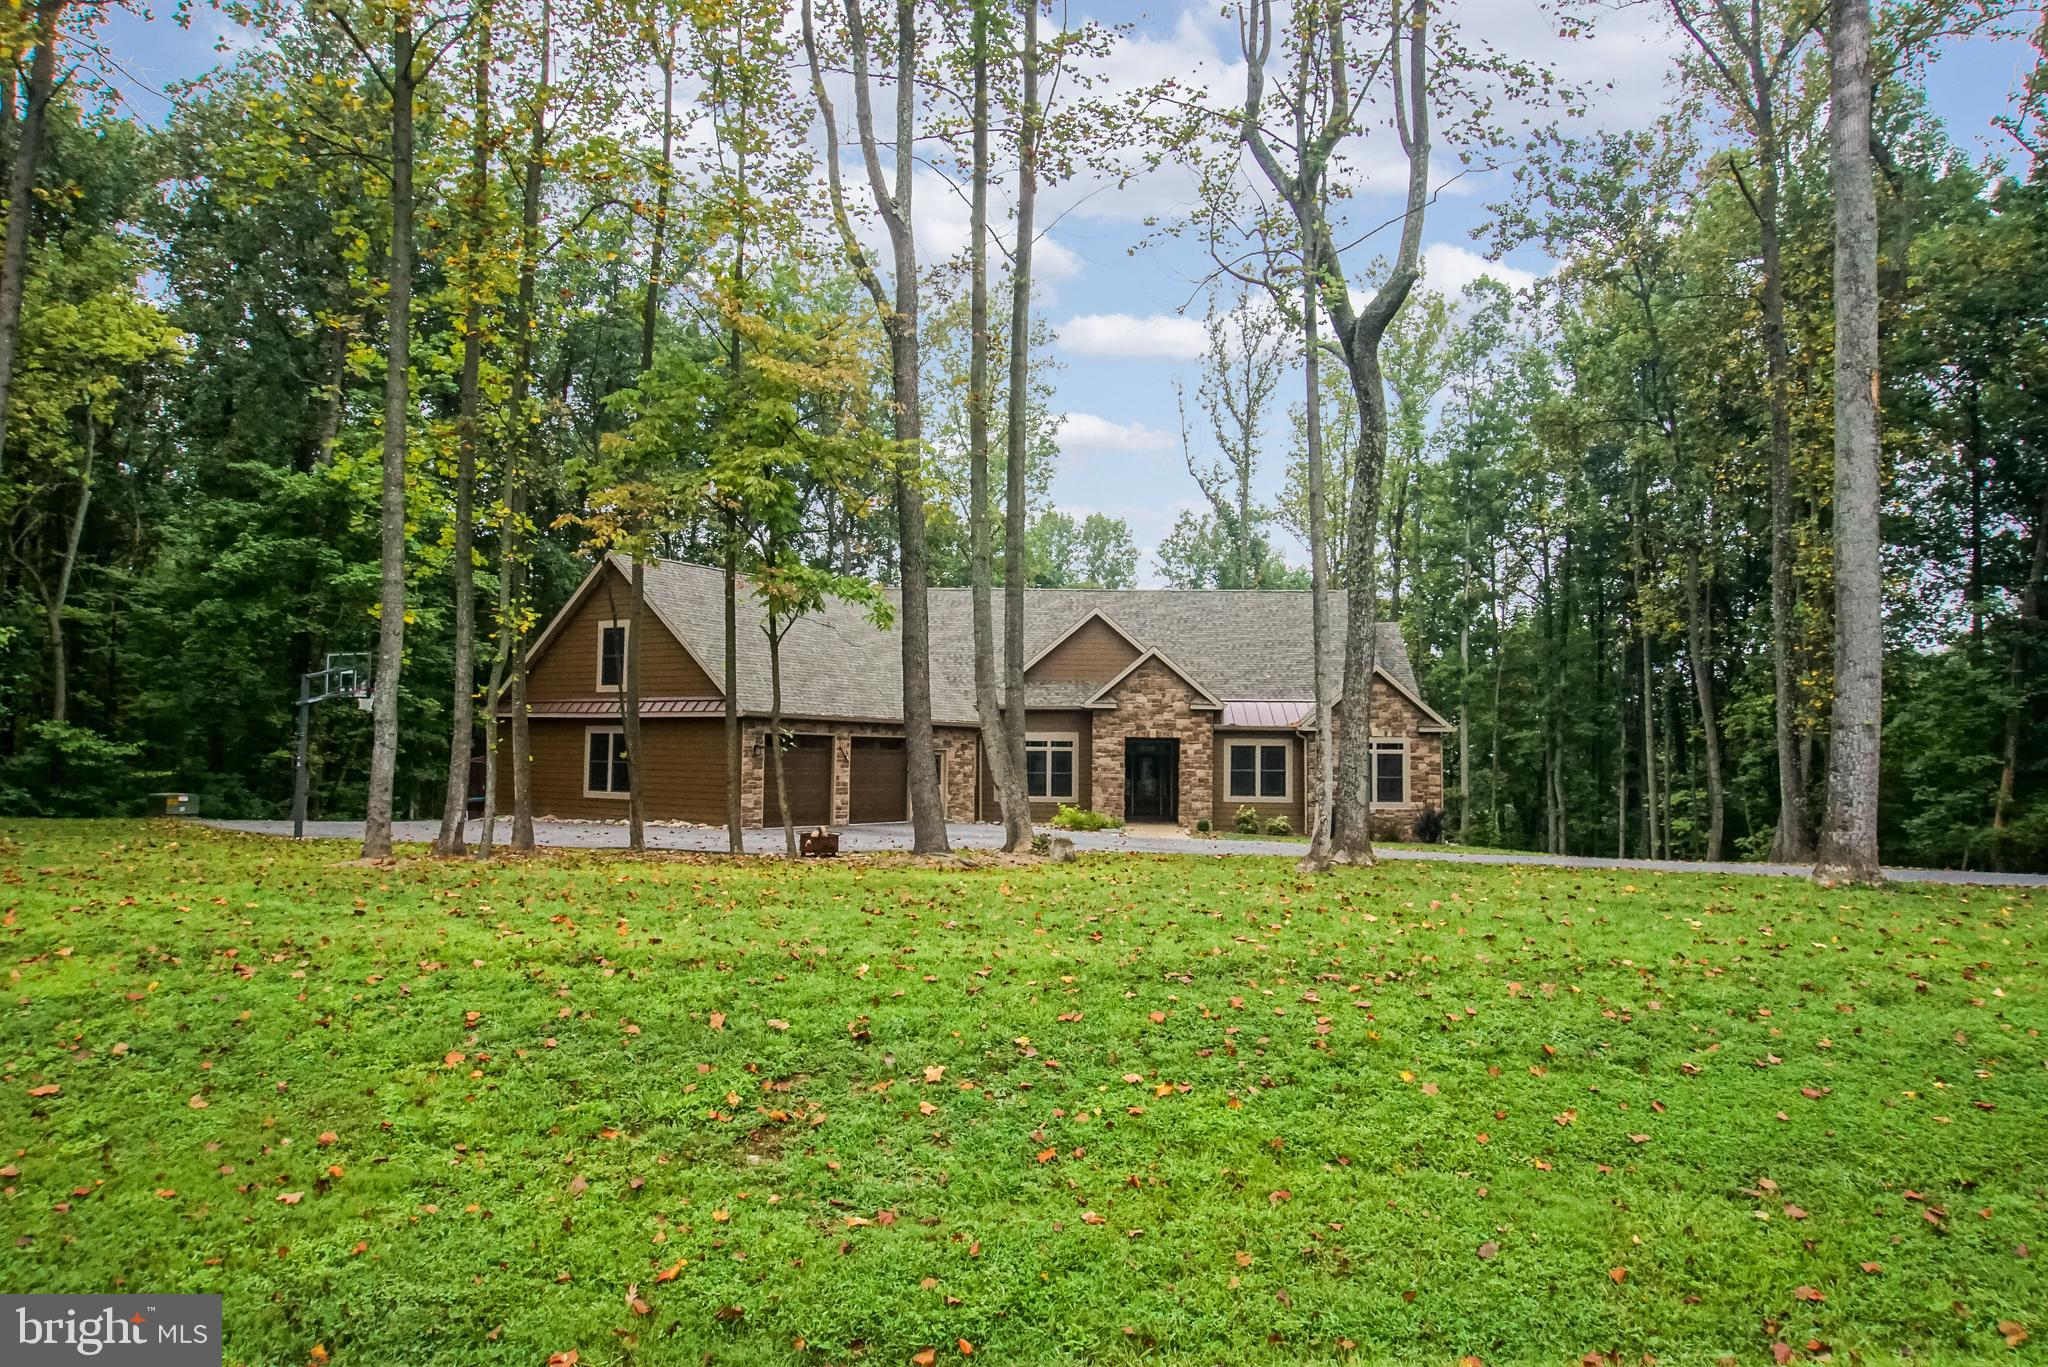 118 GRANDVIEW COURT, HARPERS FERRY, WV 25425